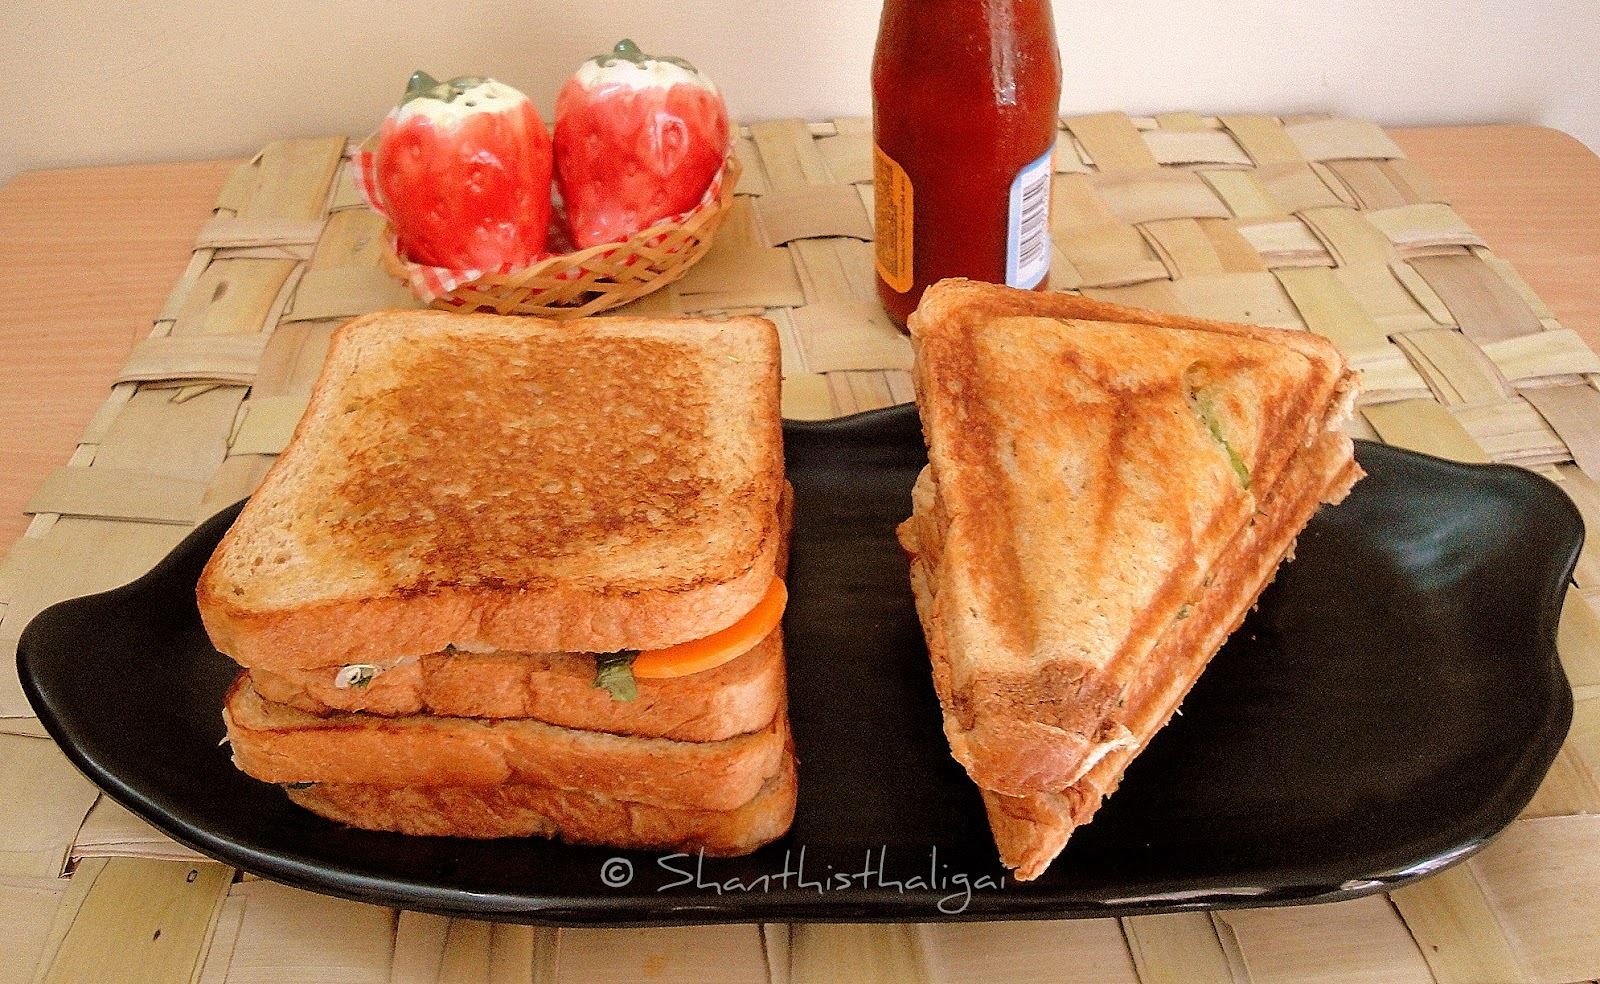 QUINOA AND SWEET POTATO SANDWICH TOAST / QUINOA AND SWEET POTATO TOASTED SANDWICH / QUINOA SANDWICH TOAST / QUINOA TOASTED SANDWICH